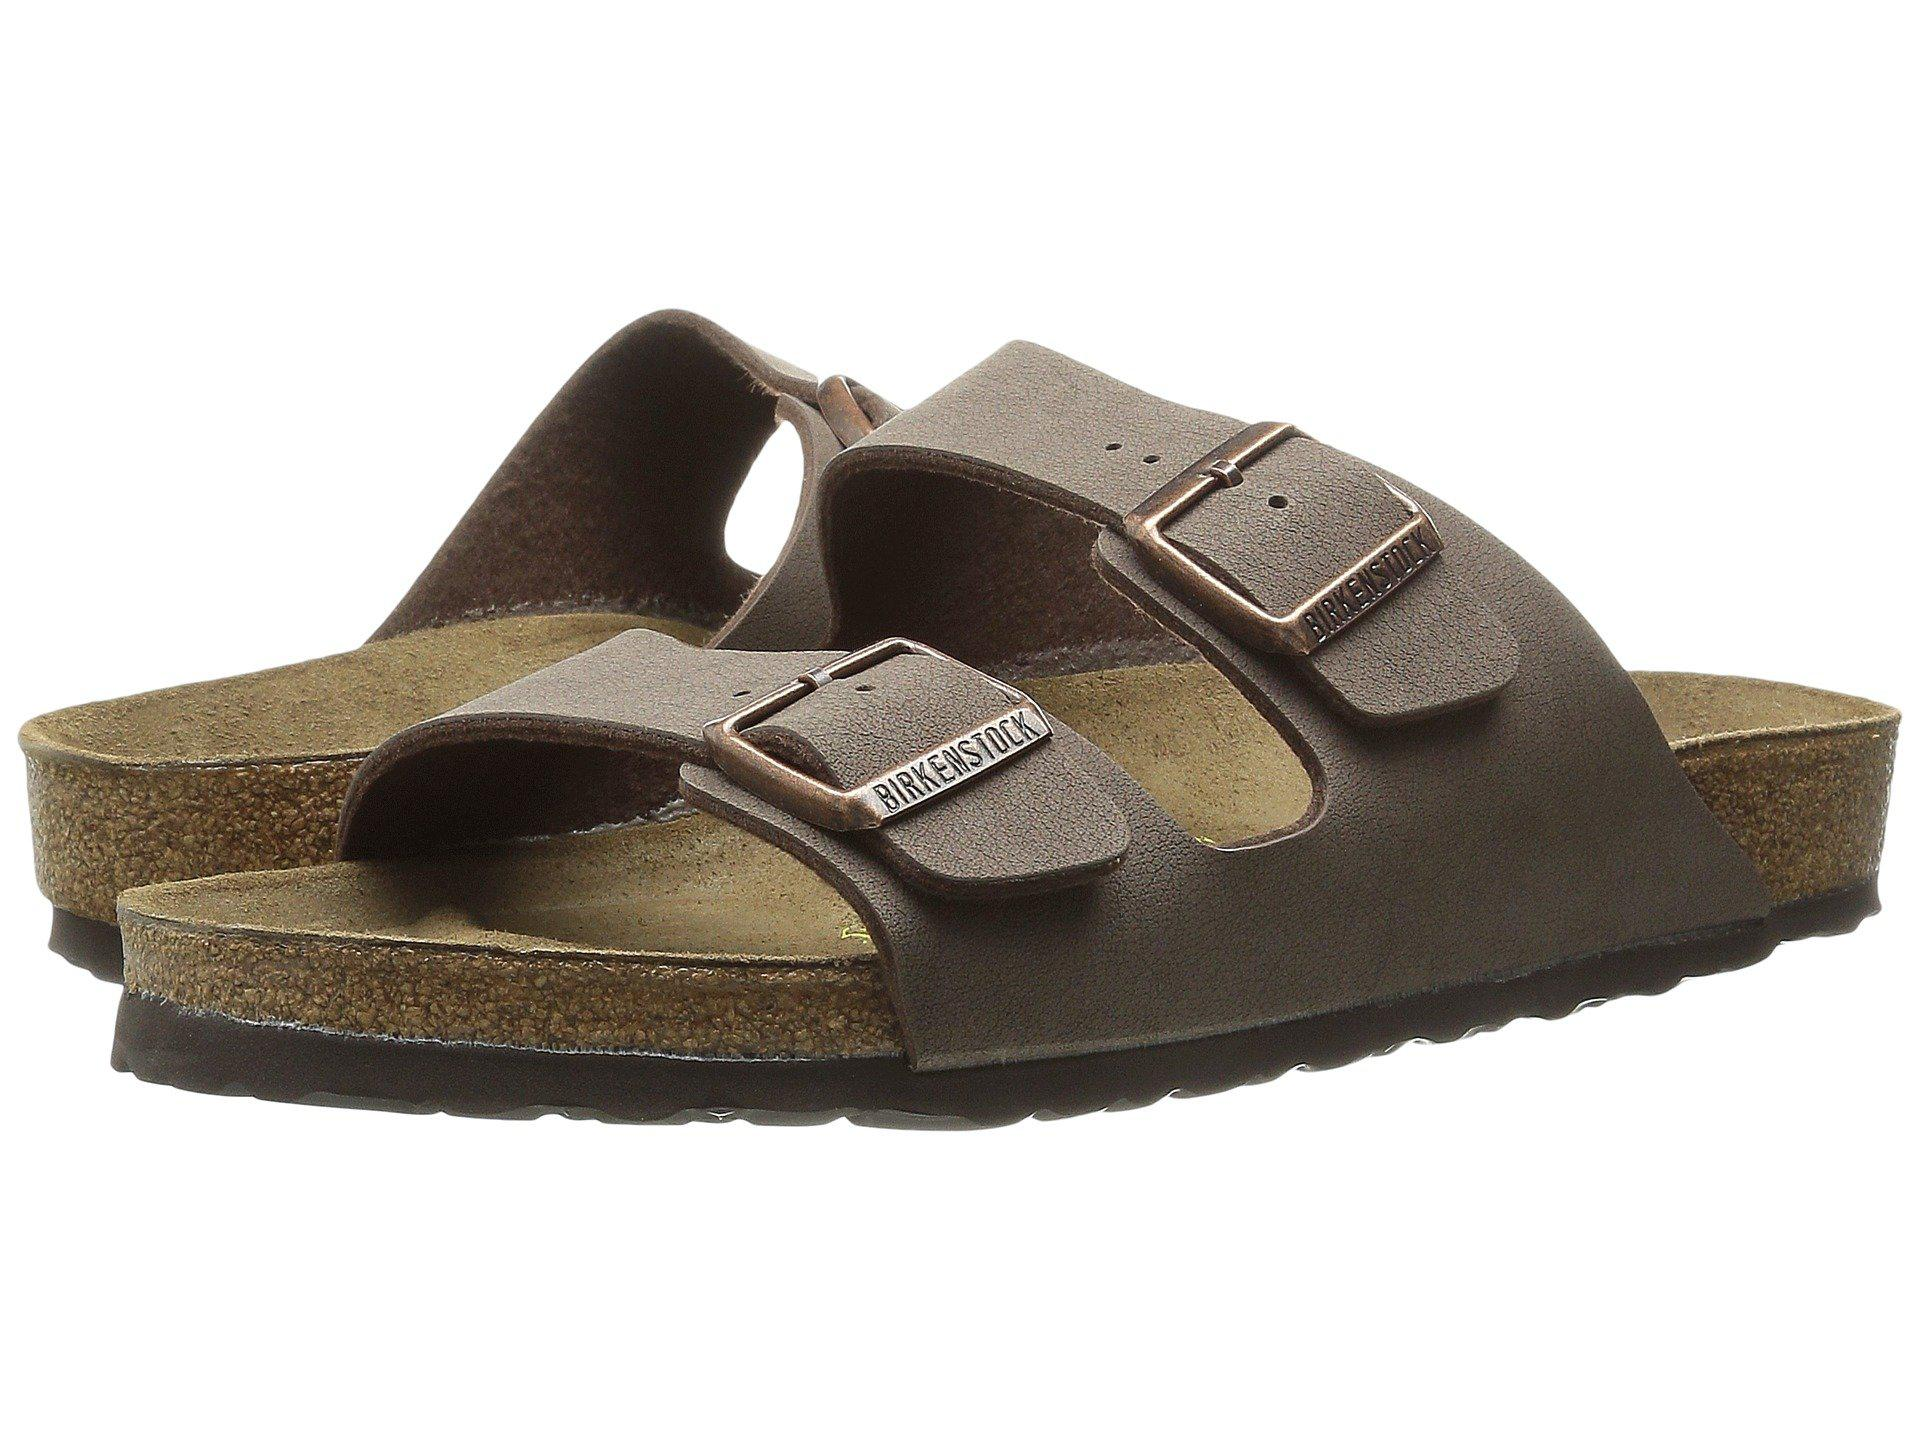 41dc5c1cd13e Birkenstock - Brown Arizona - Birkibuctm (unisex) - Lyst. View fullscreen